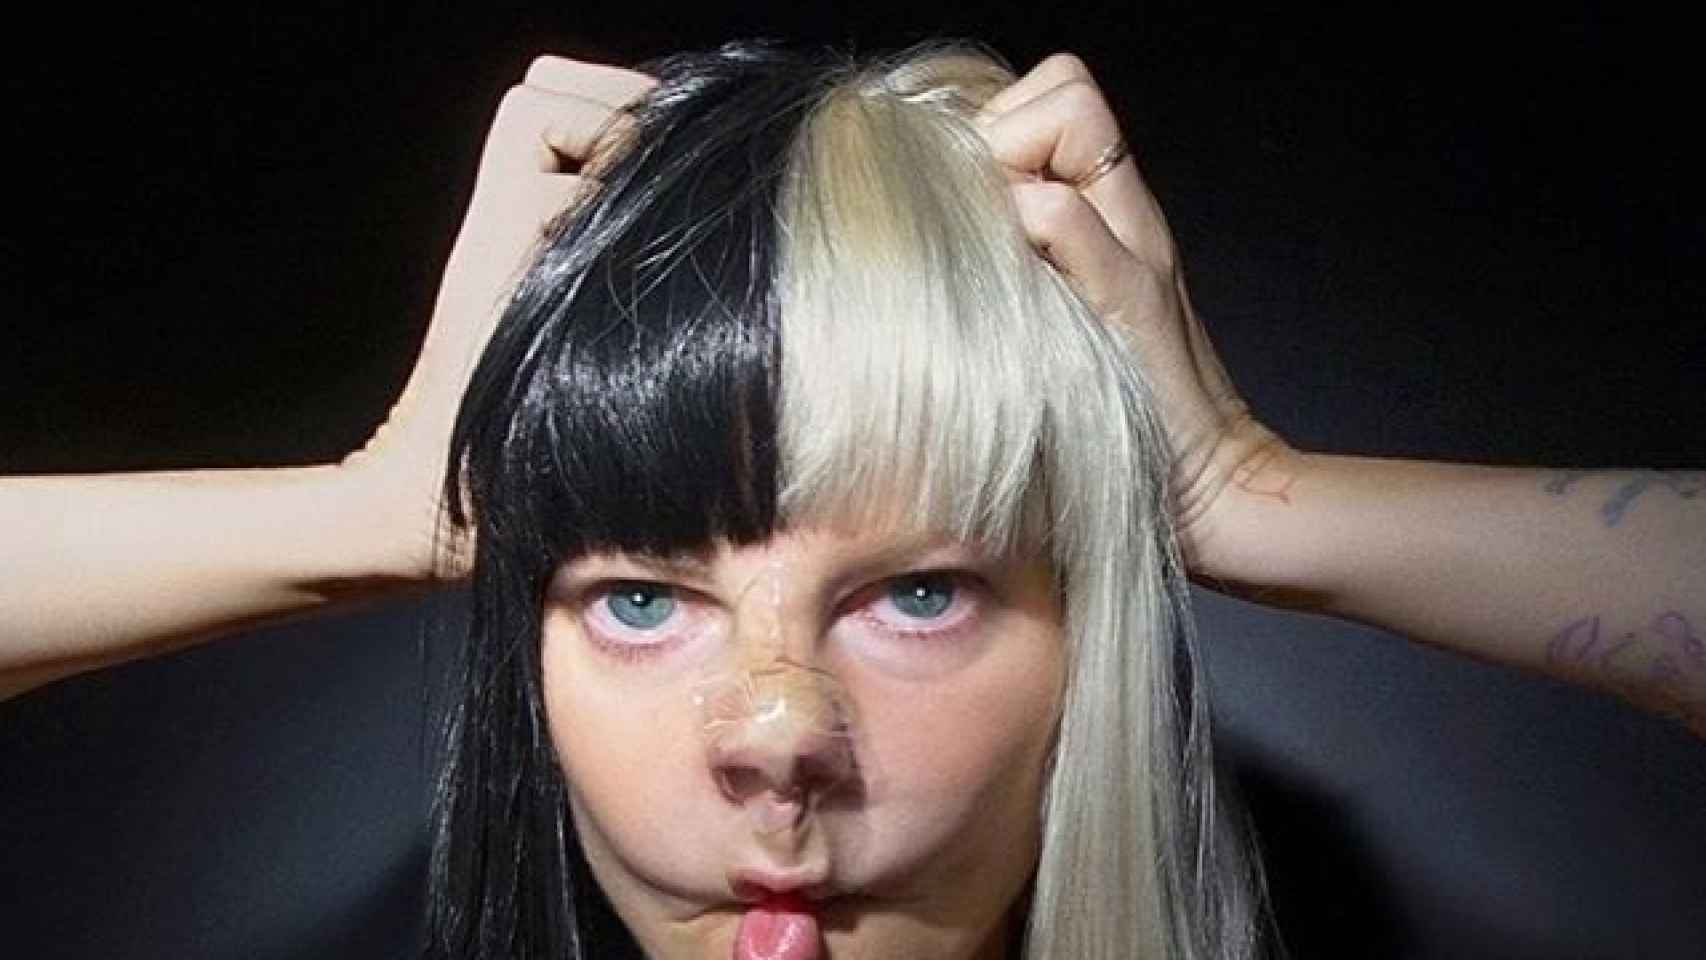 Portada a cara descubierta de This Is Acting, el último disco de Sia